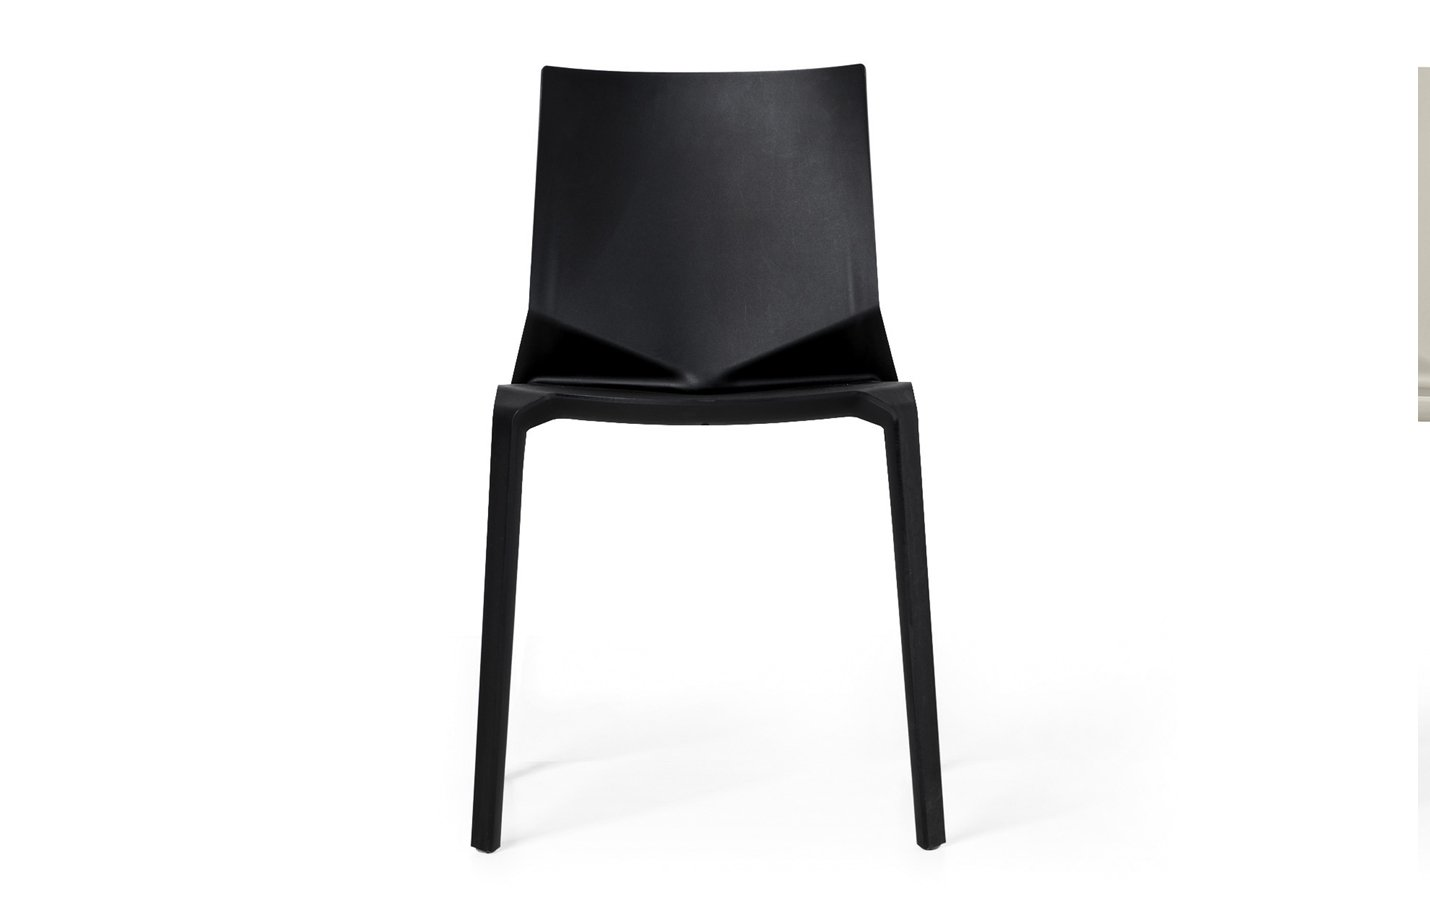 Plana chair – black